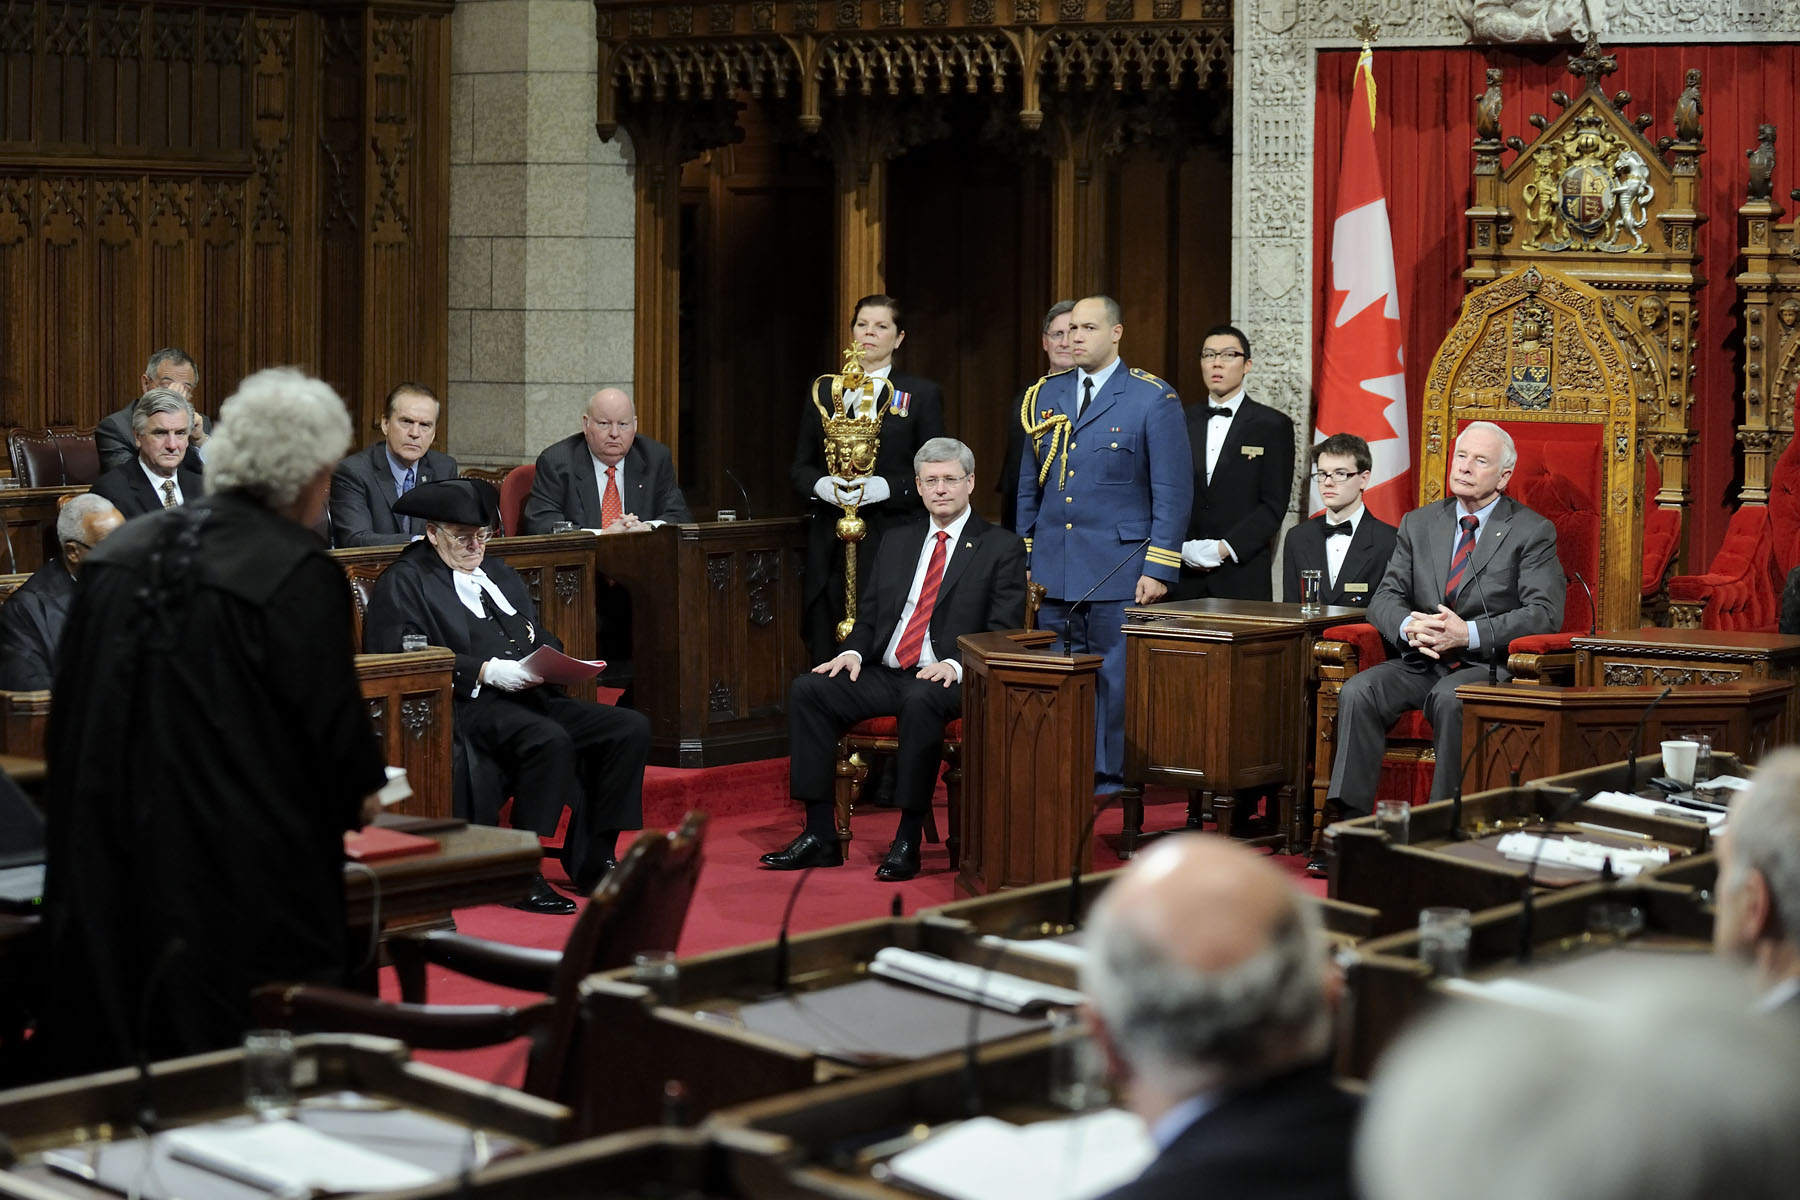 His Excellency the Right Honourable David Johnston, Governor General of Canada, granted Royal Assent to bills during a formal ceremony in the Senate Chamber, on December 14, 2012.